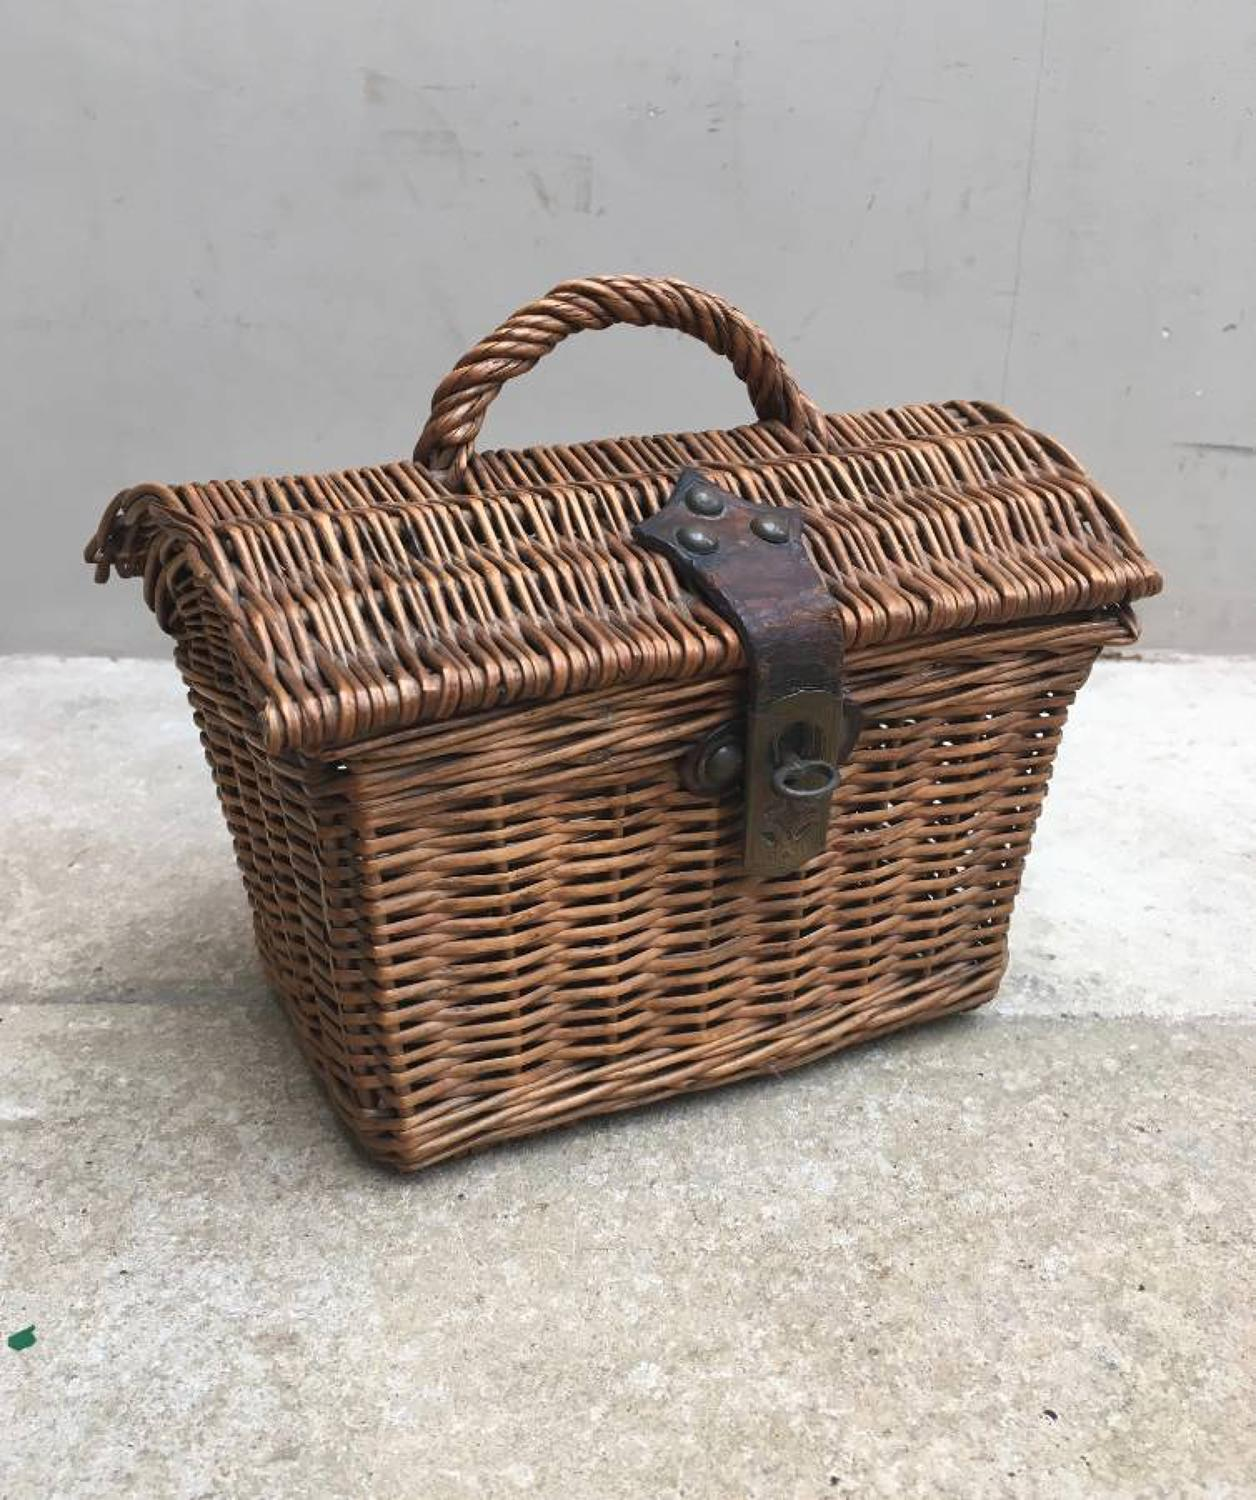 Superb Victorian Childs Basket - Wonderful Condition